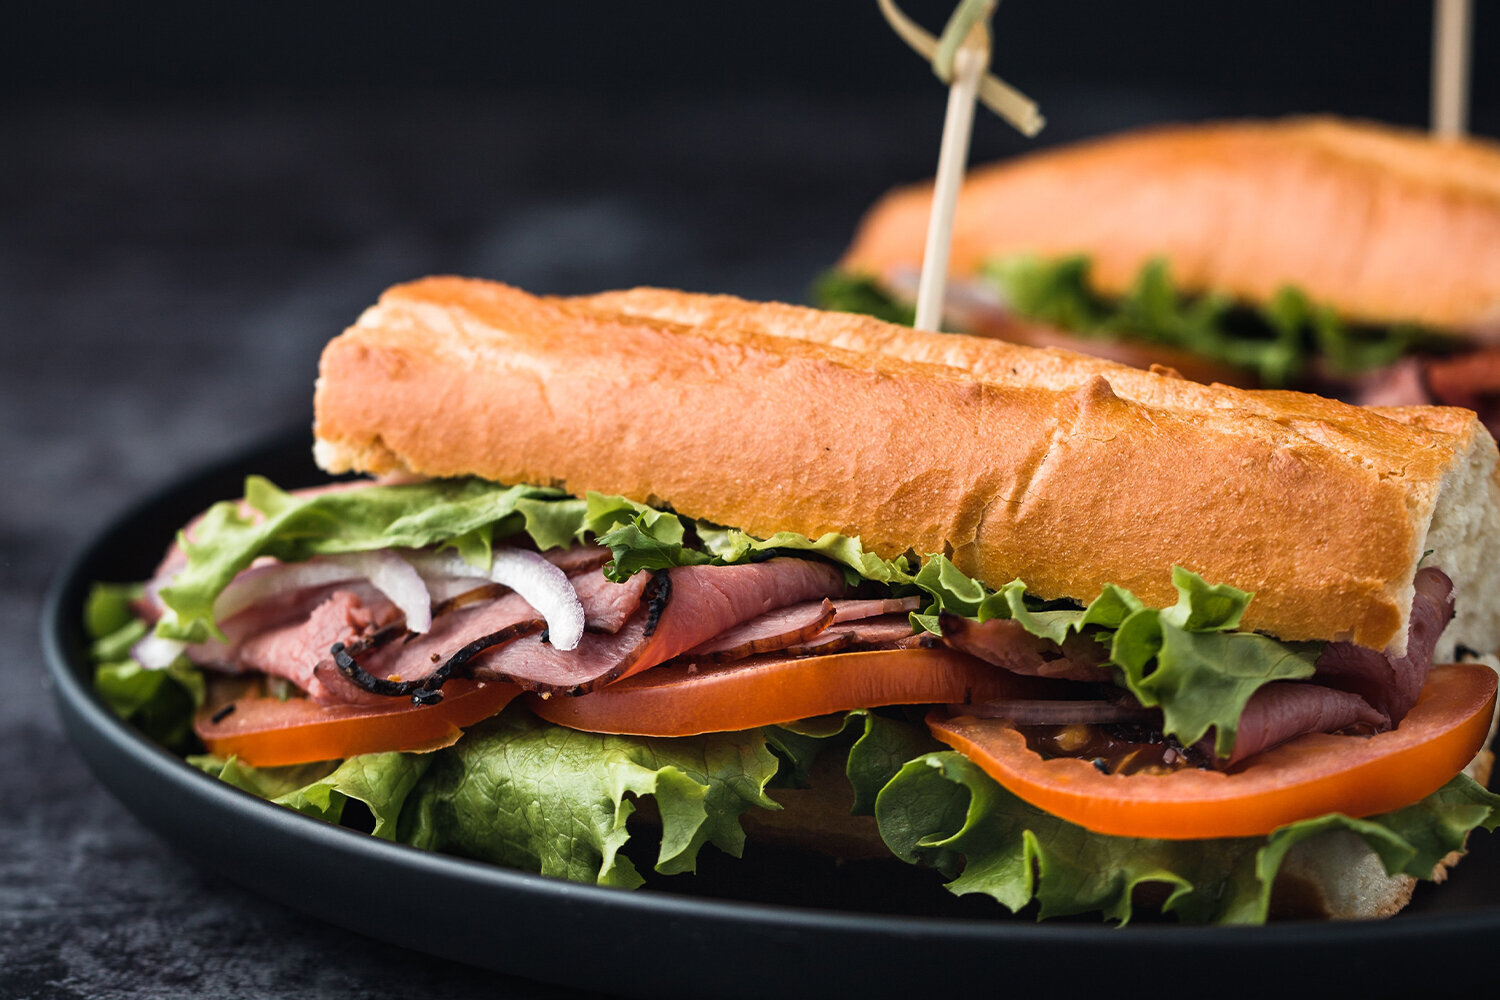 subs-and-wraps-branford-ct